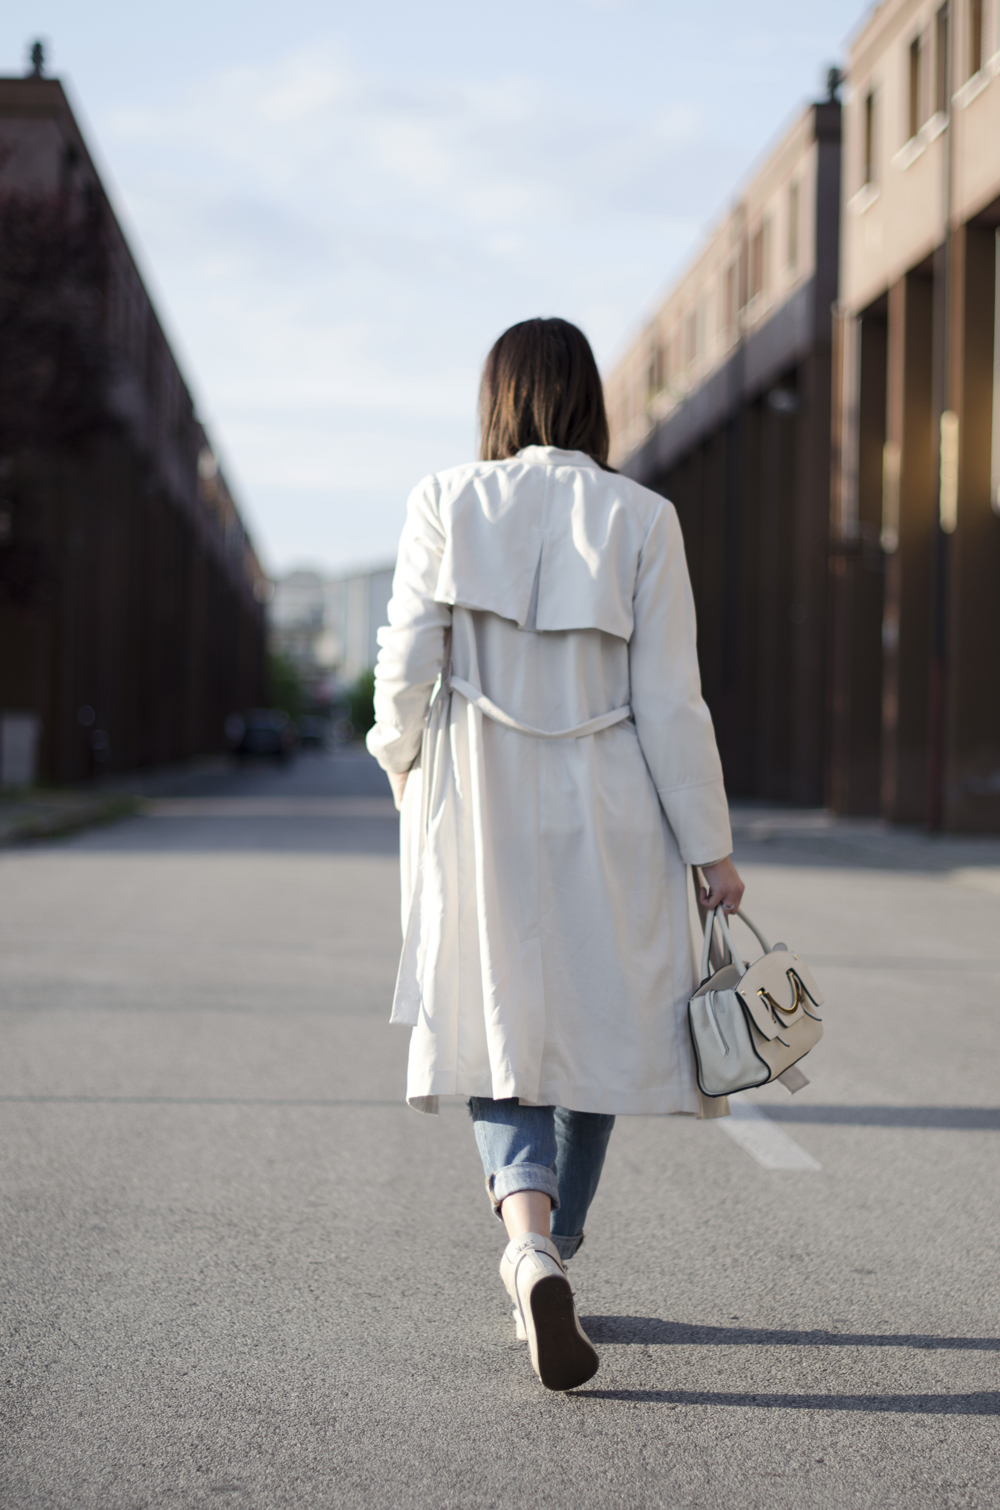 trench outfit | trench lungo | boyfriend jeans outfit